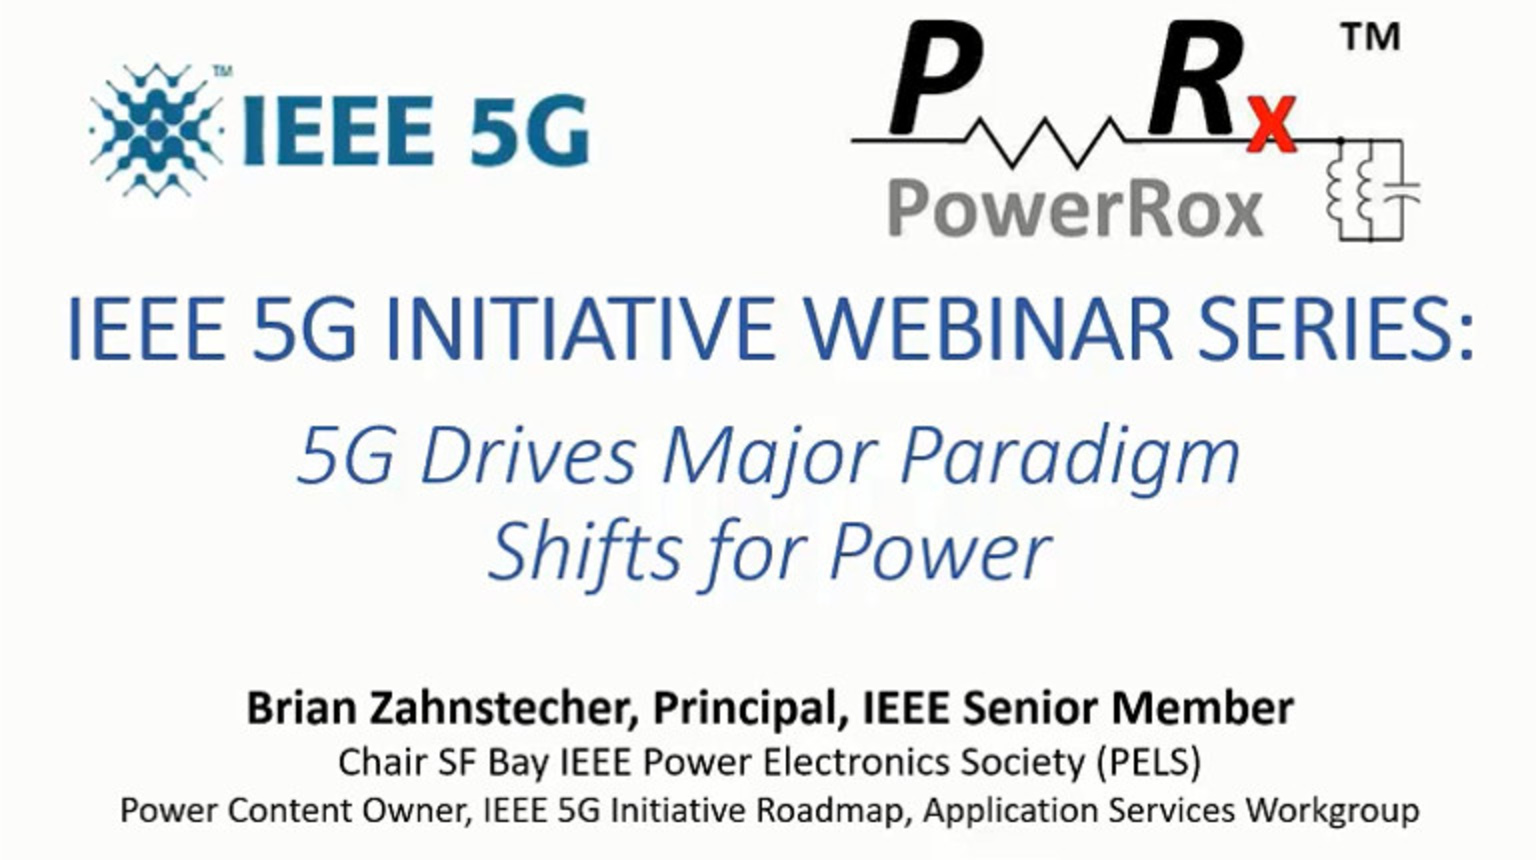 IEEE Future Networks: 5G Drives Major Paradigm Shifts for Power